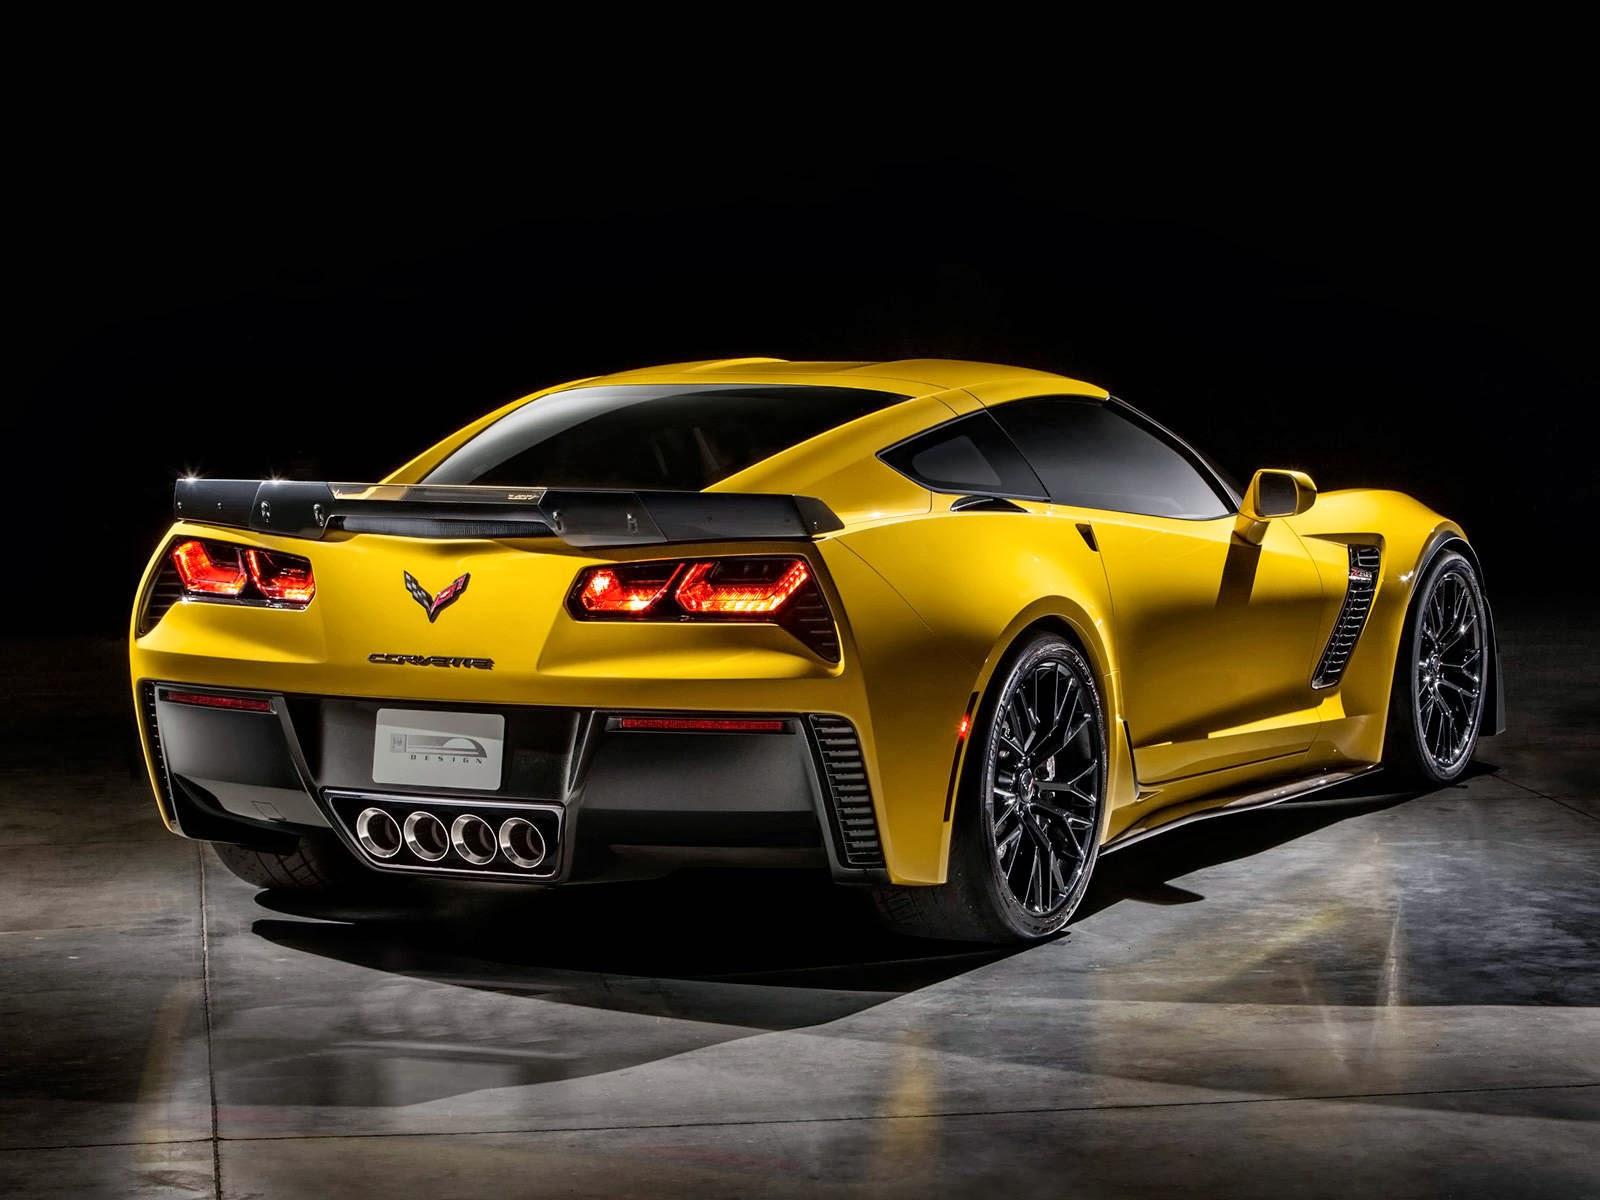 2015 chevrolet corvette z06 sport car picture wallpaperautocars. Black Bedroom Furniture Sets. Home Design Ideas